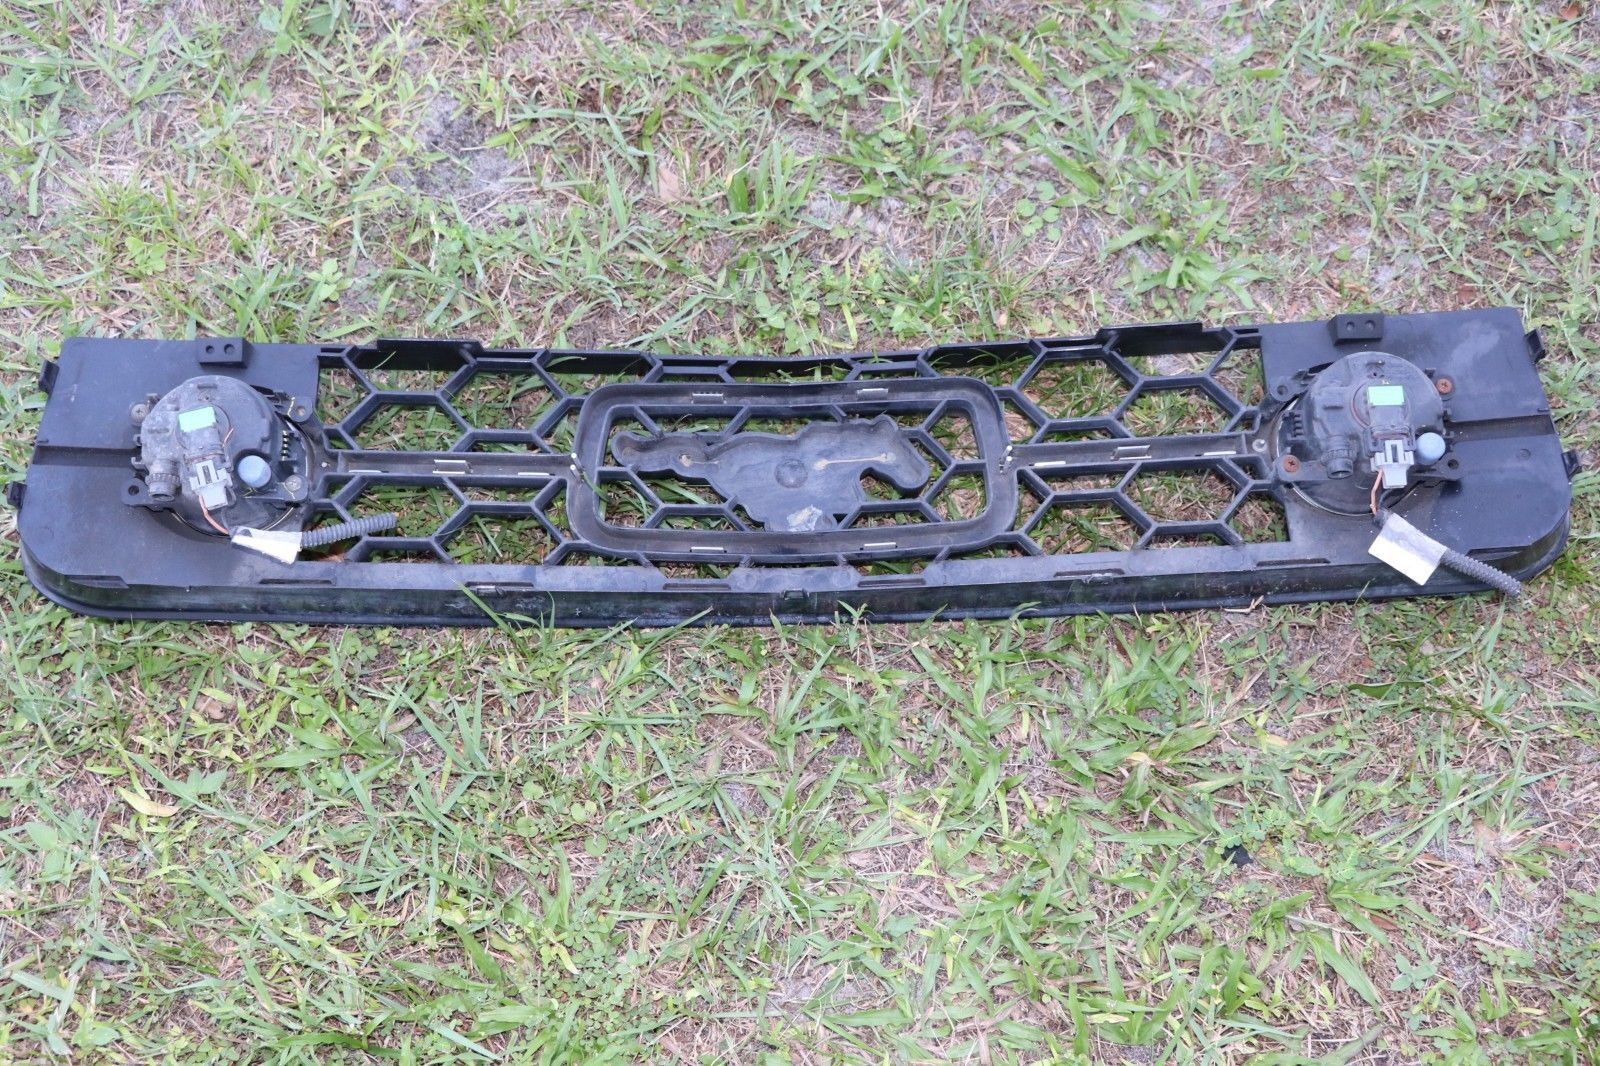 06 07 08 09 FORD MUSTANG FRONT GRILL GRILLE  W FOG LIGHTS PONY 6R3J-8200-AEW oem 6R3J-8200-AEW STUNG24